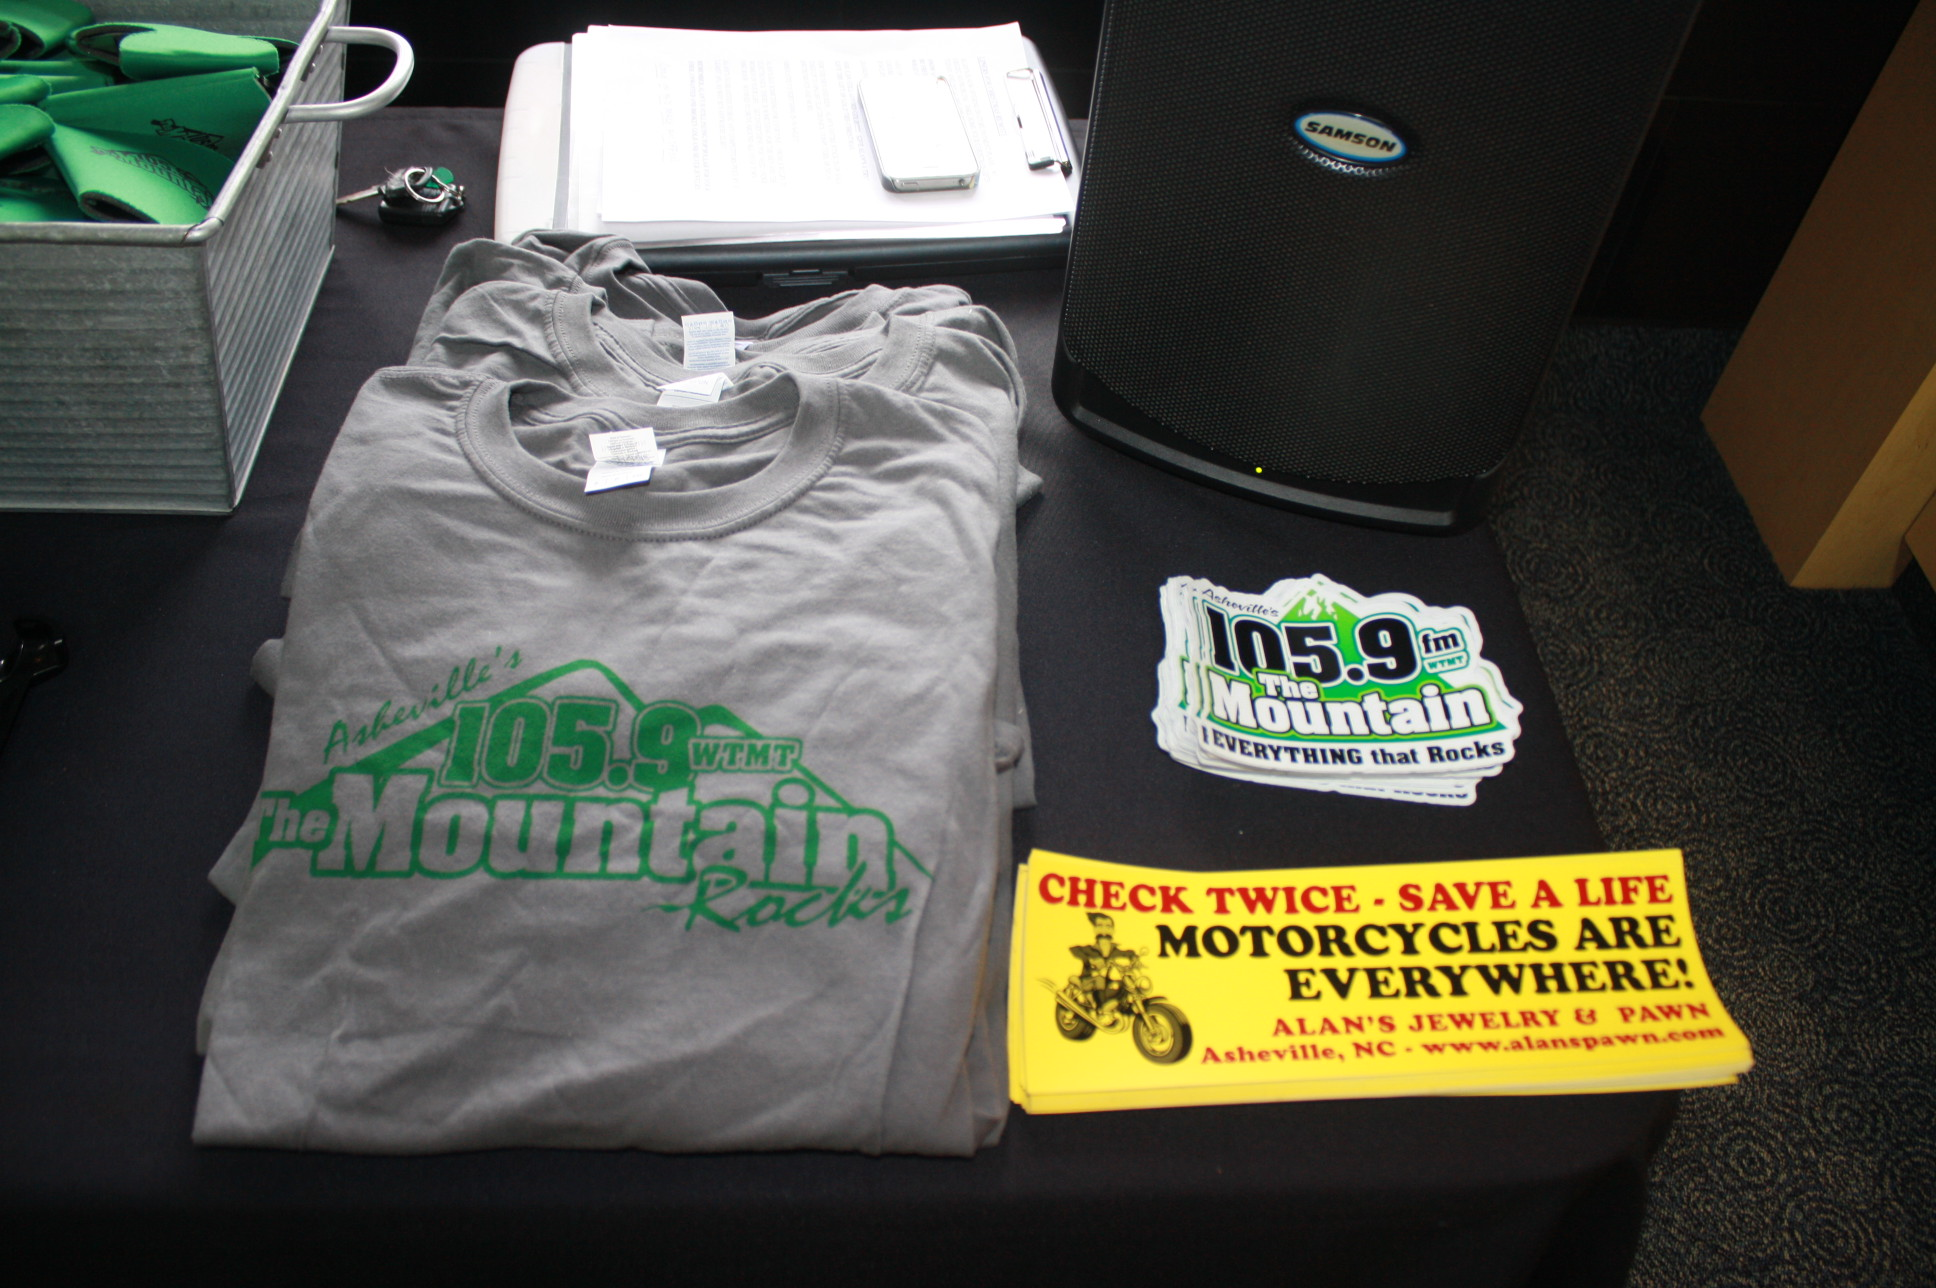 Alan 39 s jewelry and pawn 11 28 105 9 the mountain105 9 for Alan s jewelry pawn